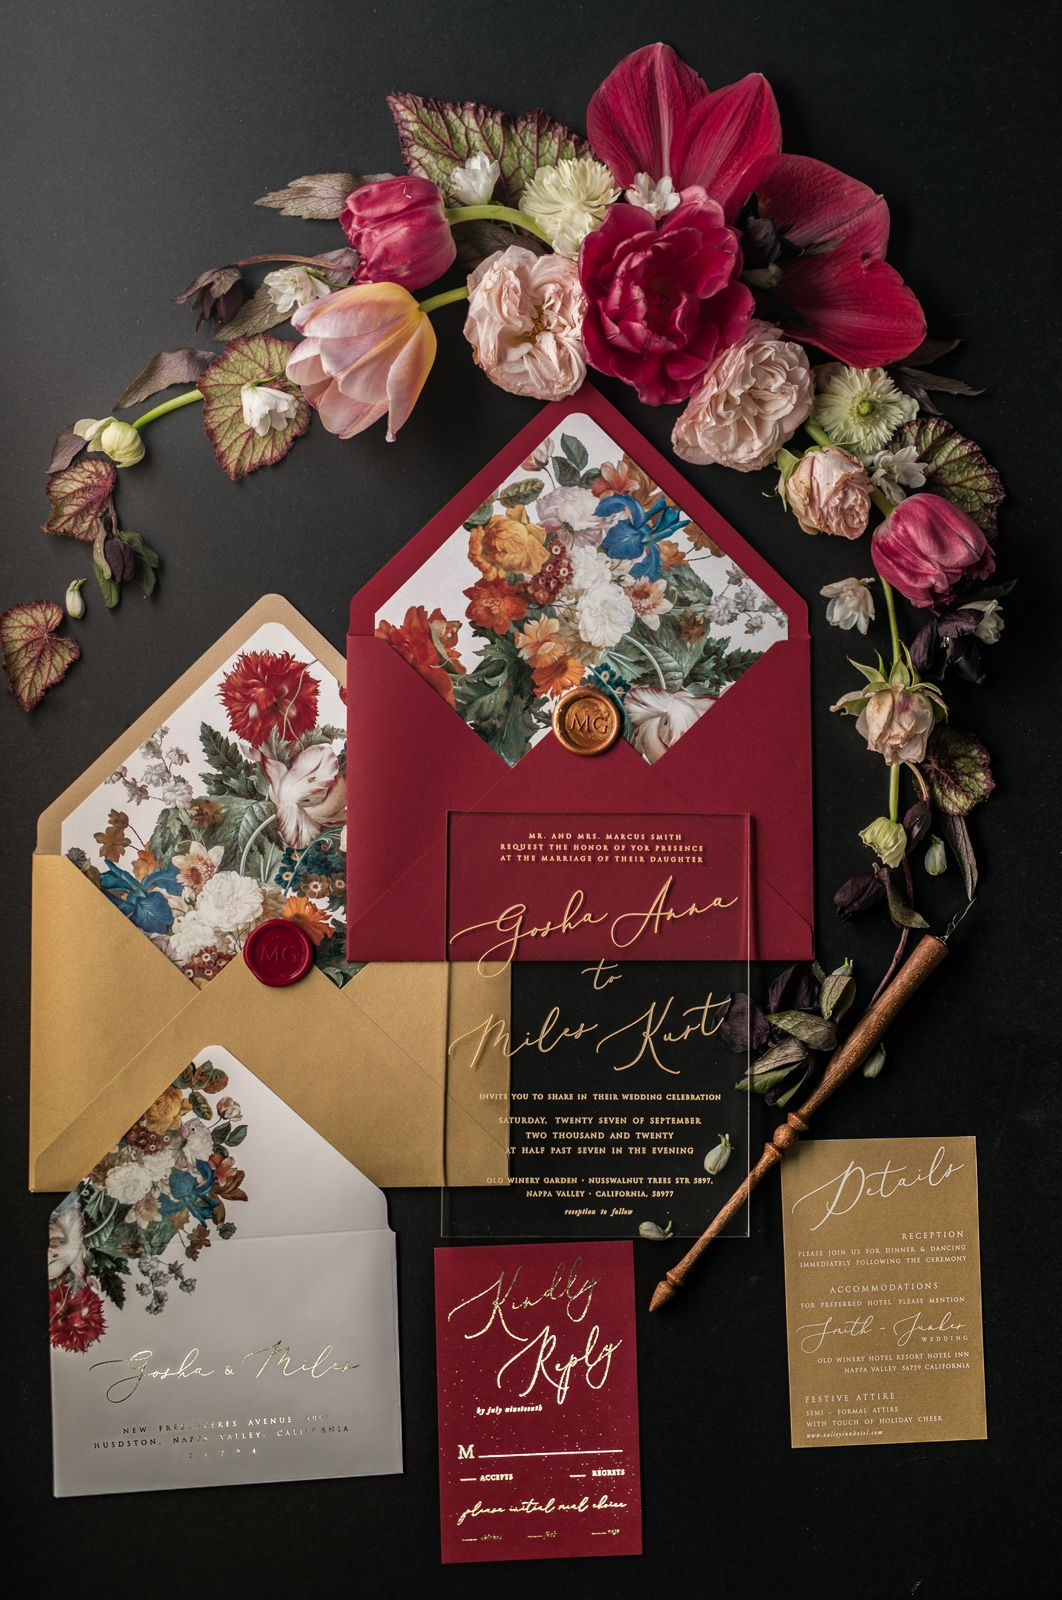 WEDDING INVITATIONS romantic | S + J | Pinterest | Vintage wedding ...